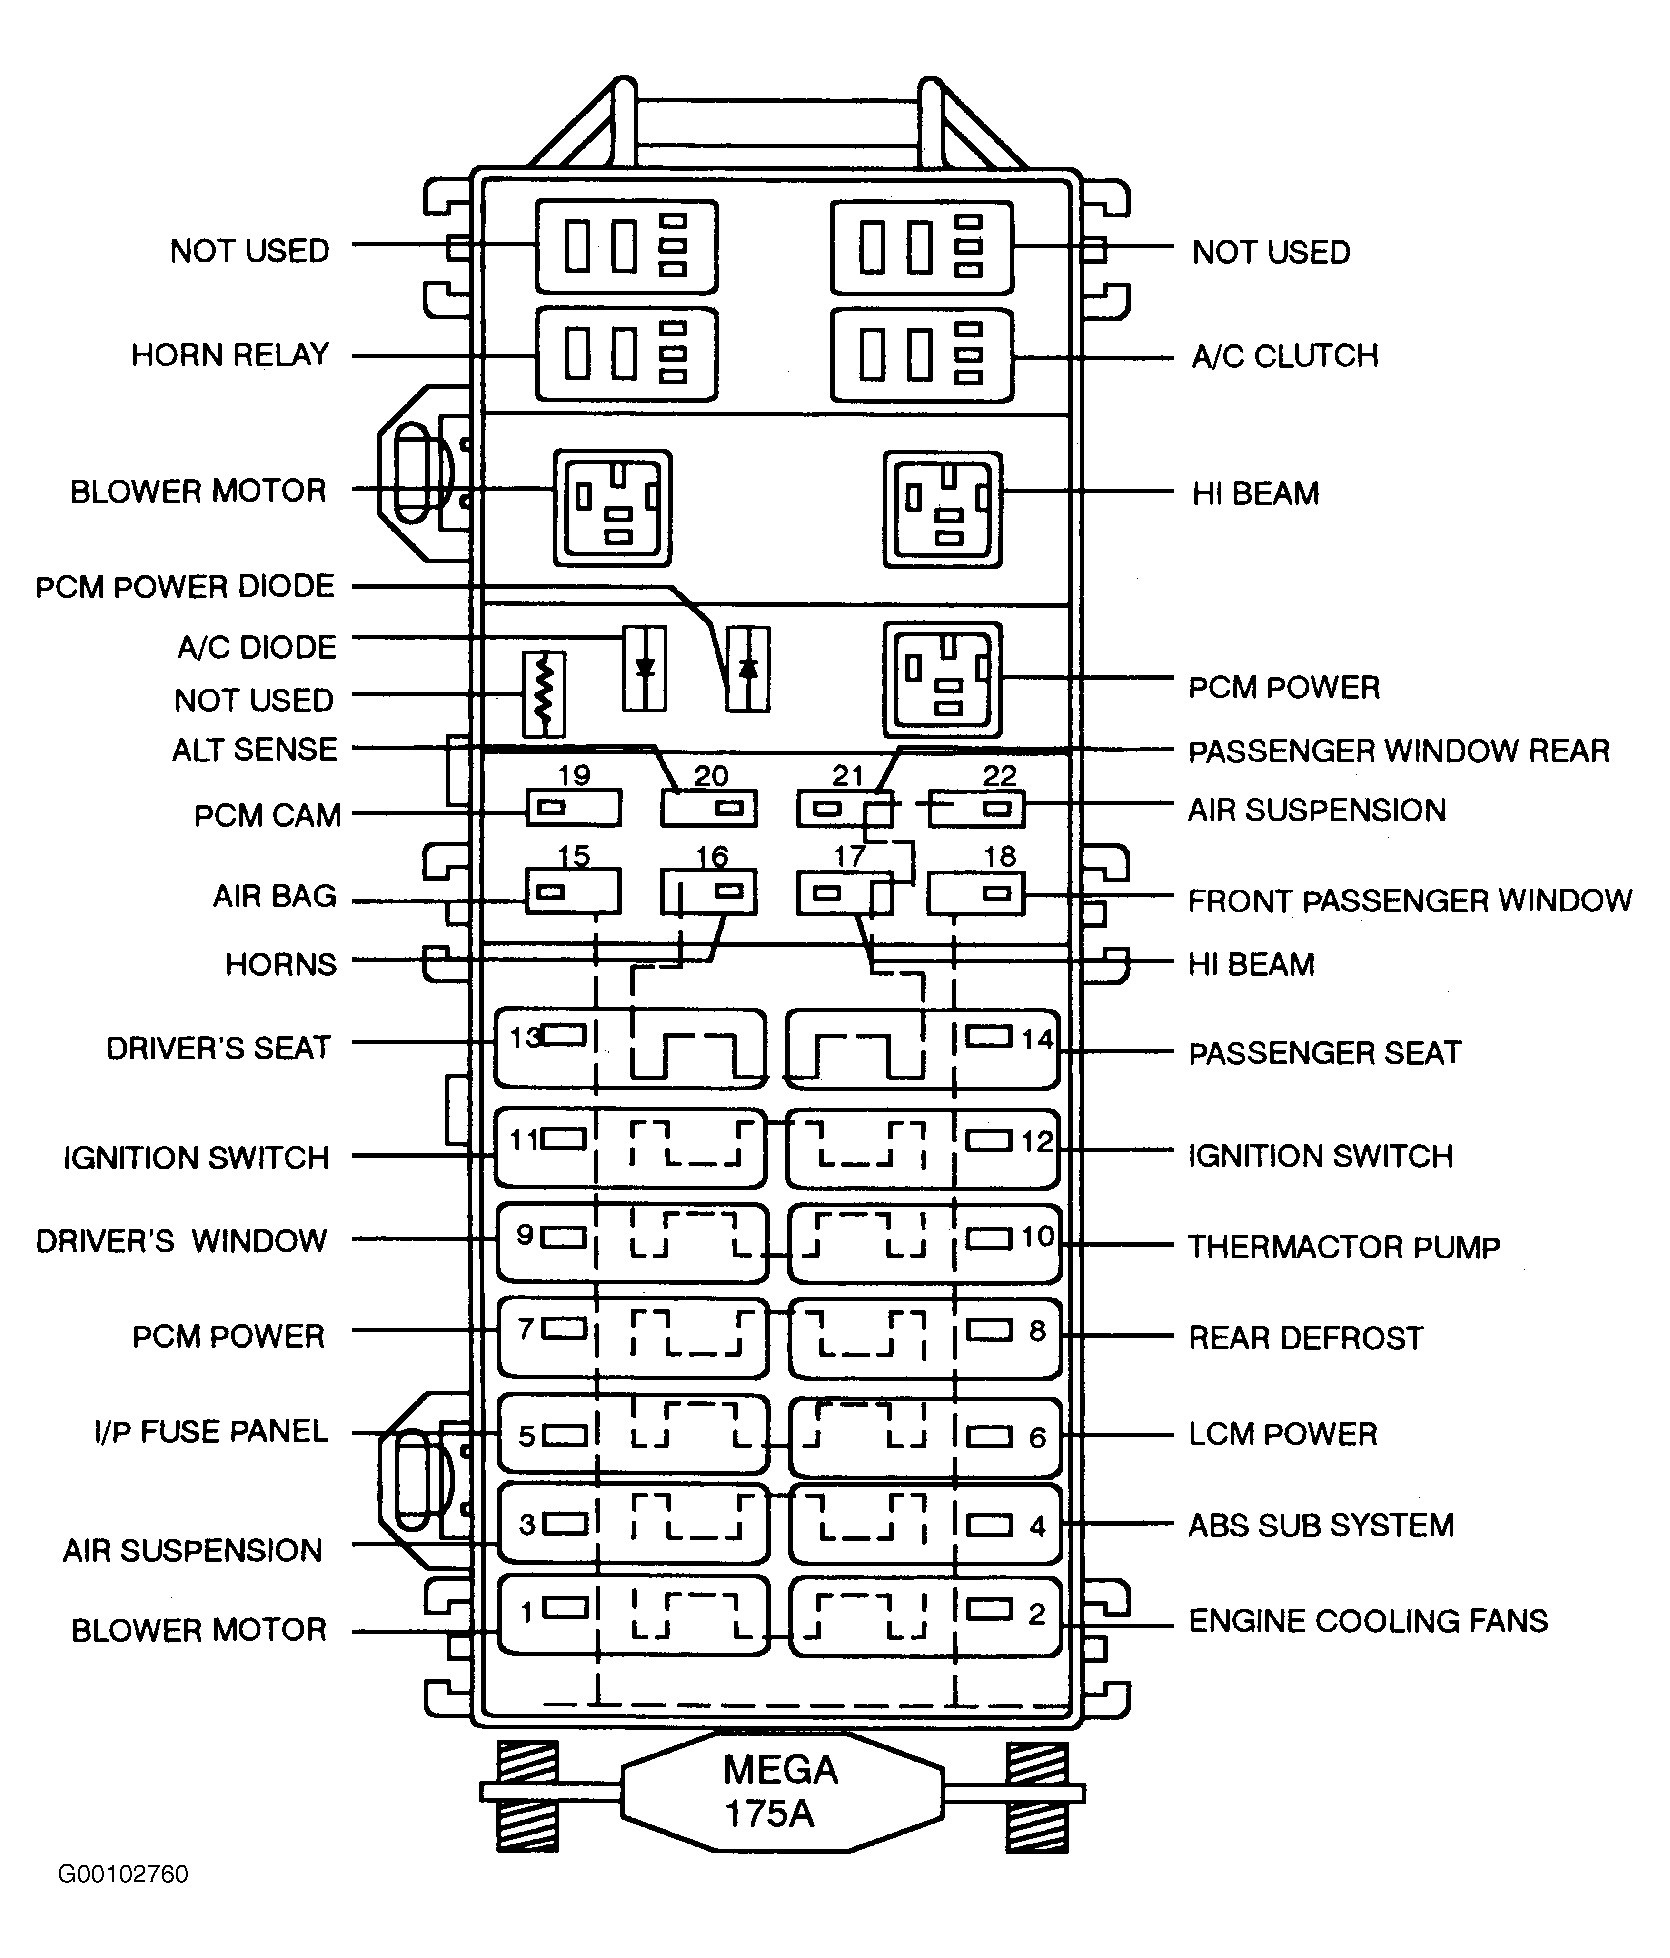 hight resolution of 1990 lincoln town car fuse diagram wiring data schema u2022 2000 town car fuse diagram